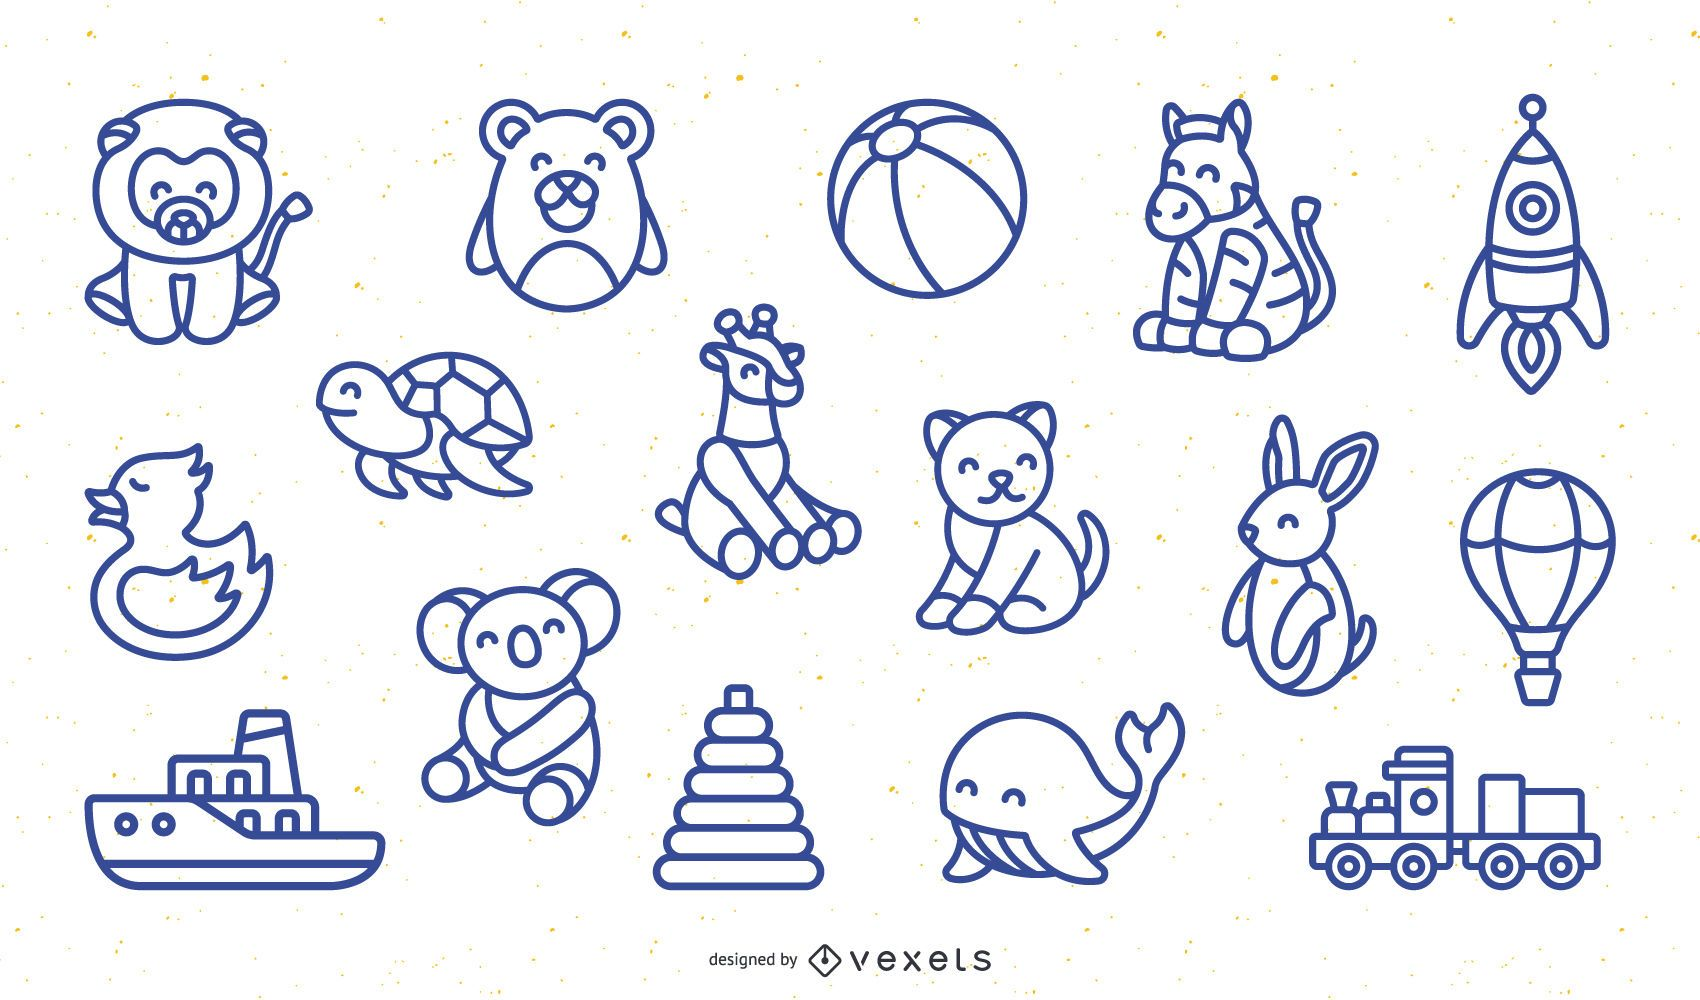 Simple Stroke Toy Design Pack